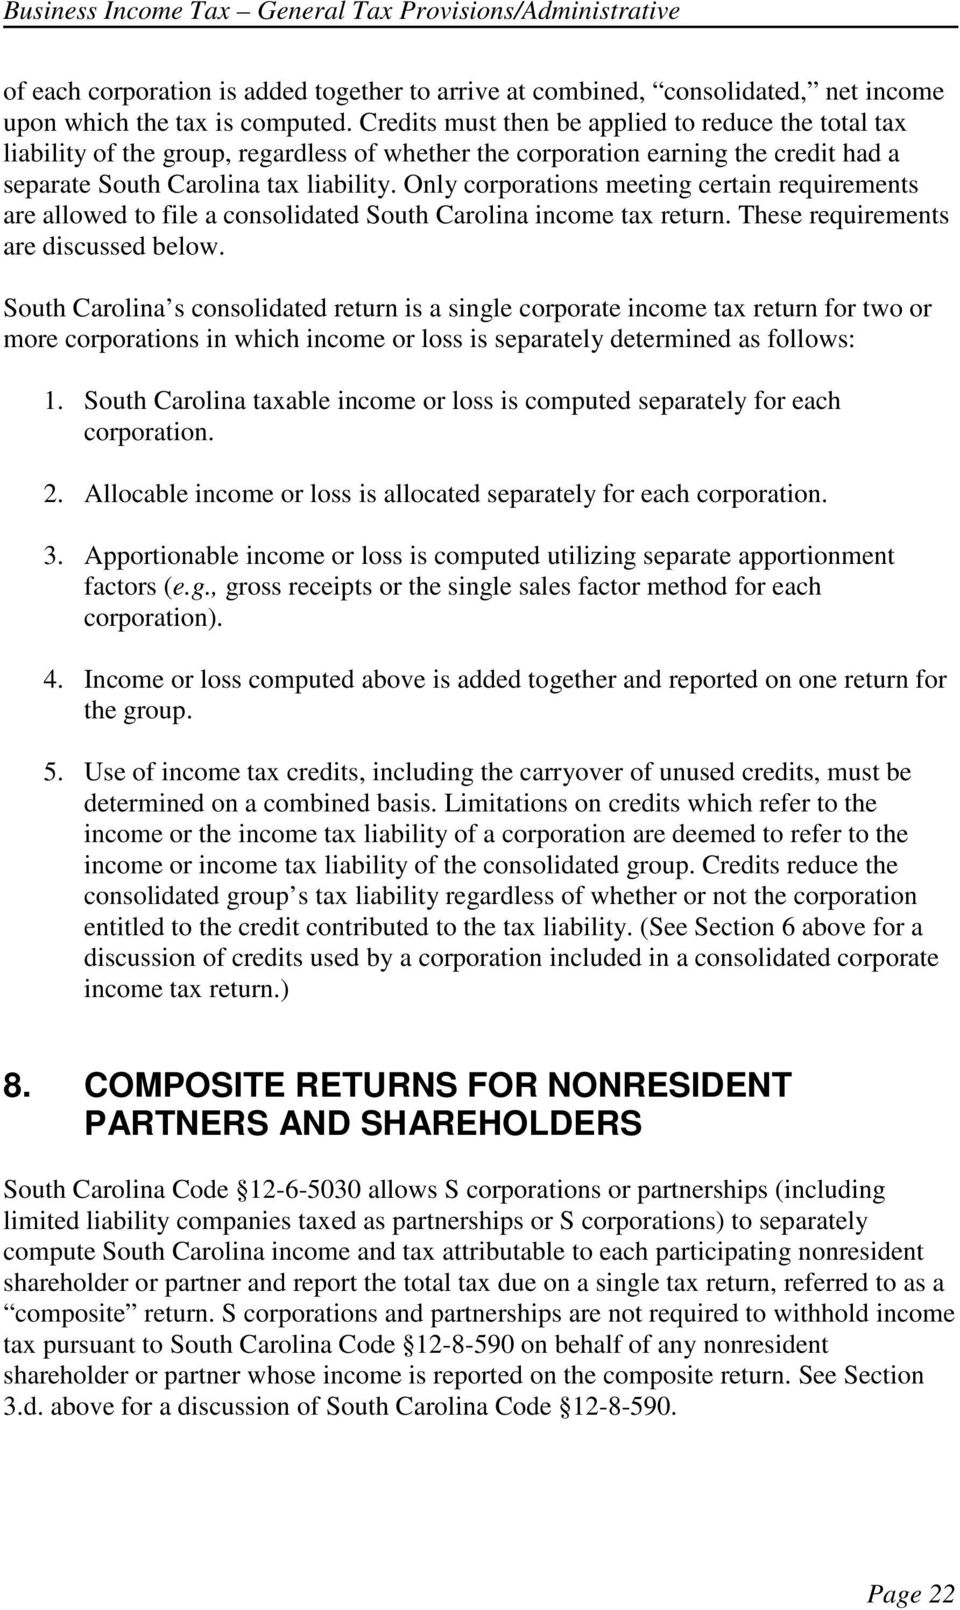 Only corporations meeting certain requirements are allowed to file a consolidated South Carolina income tax return. These requirements are discussed below.